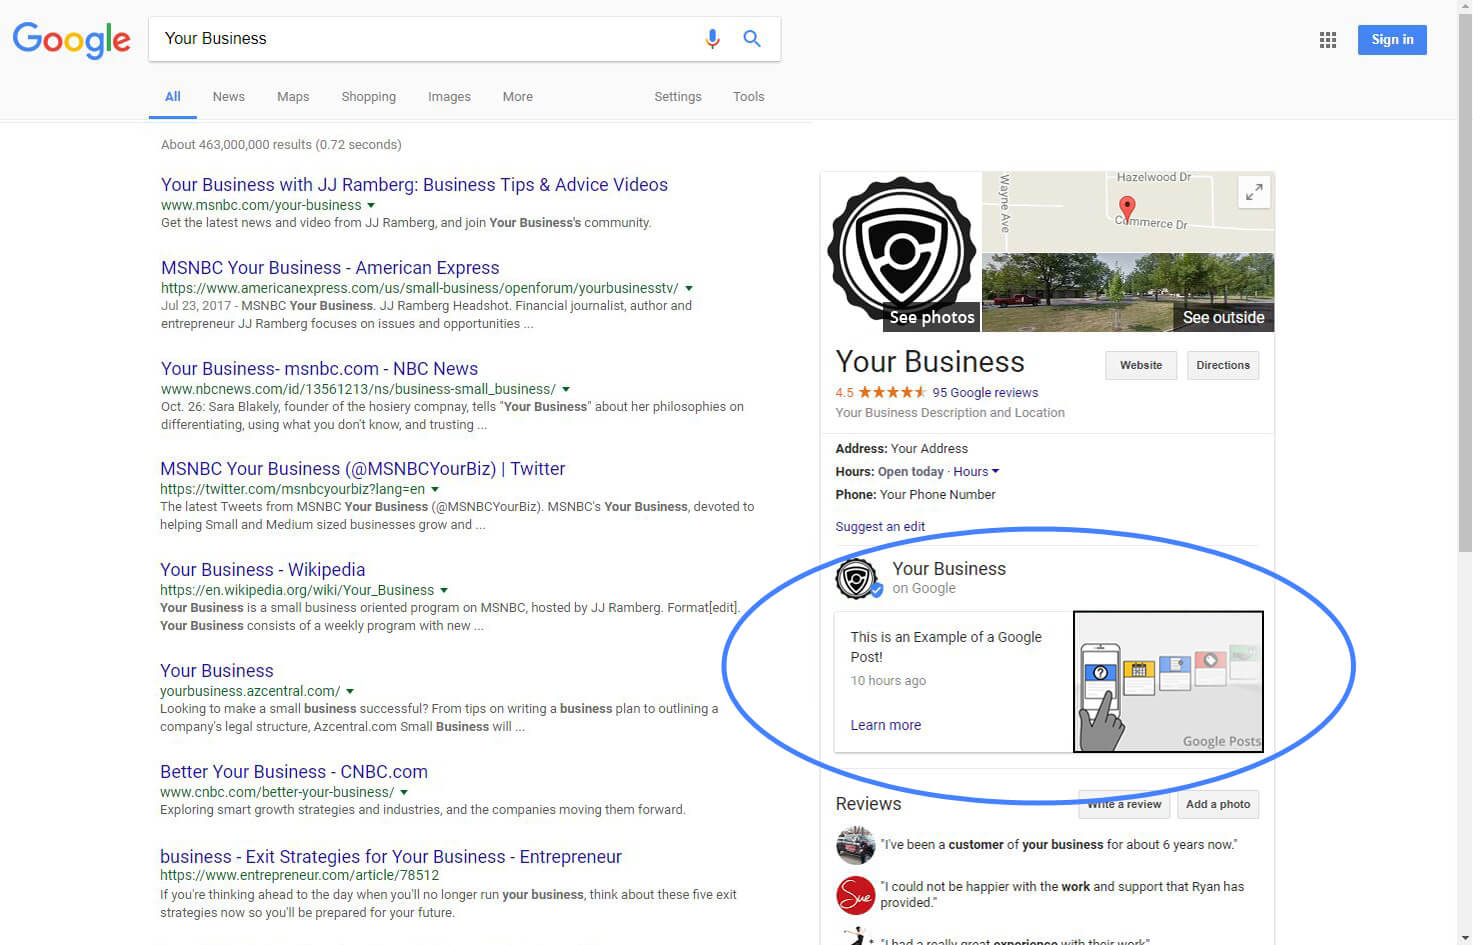 Google Posts in Search Results